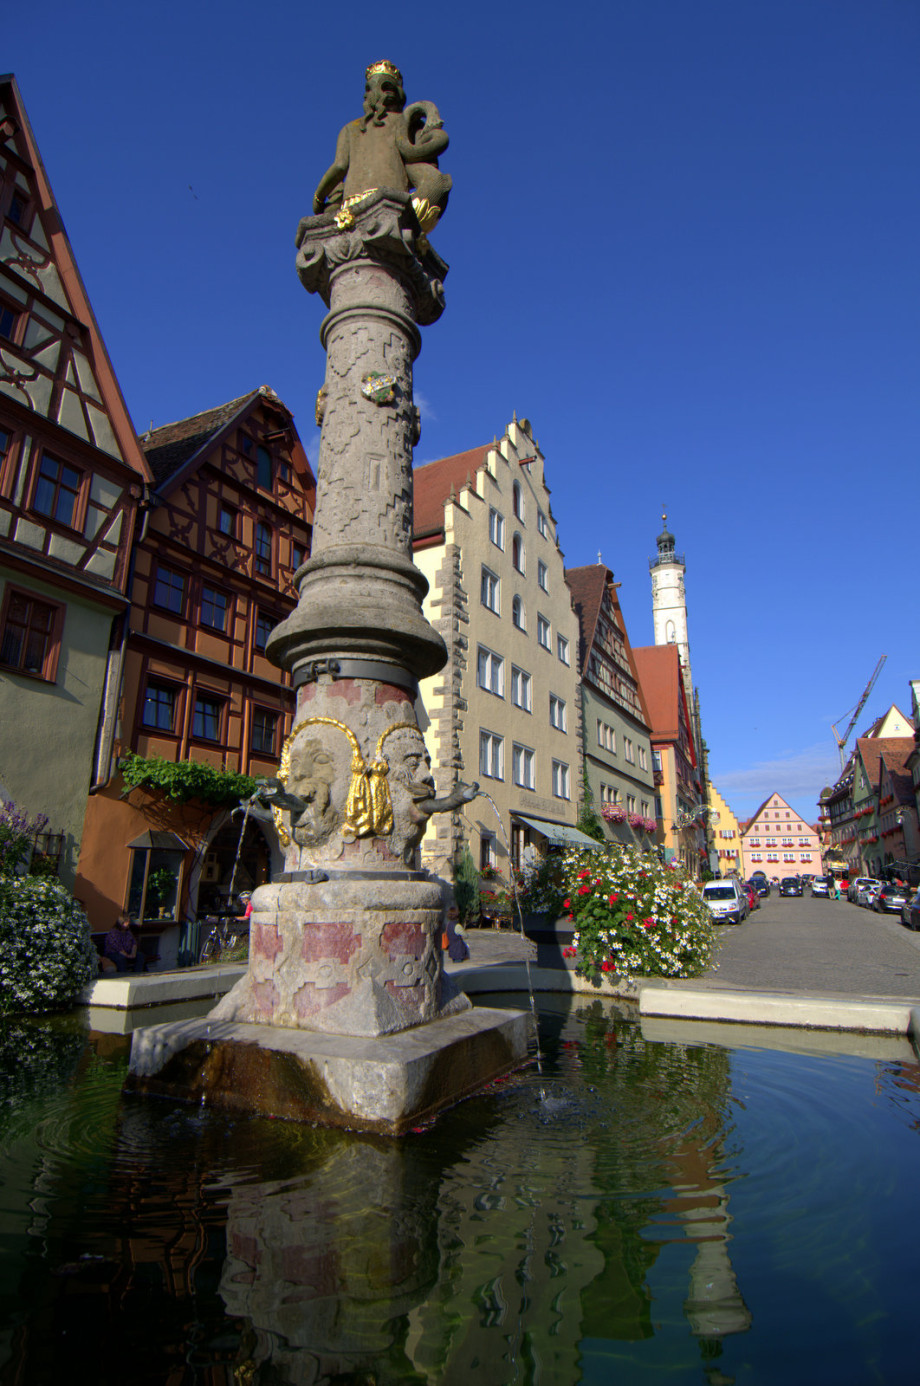 Photo of Rothenburg ob der Tauber, Germany